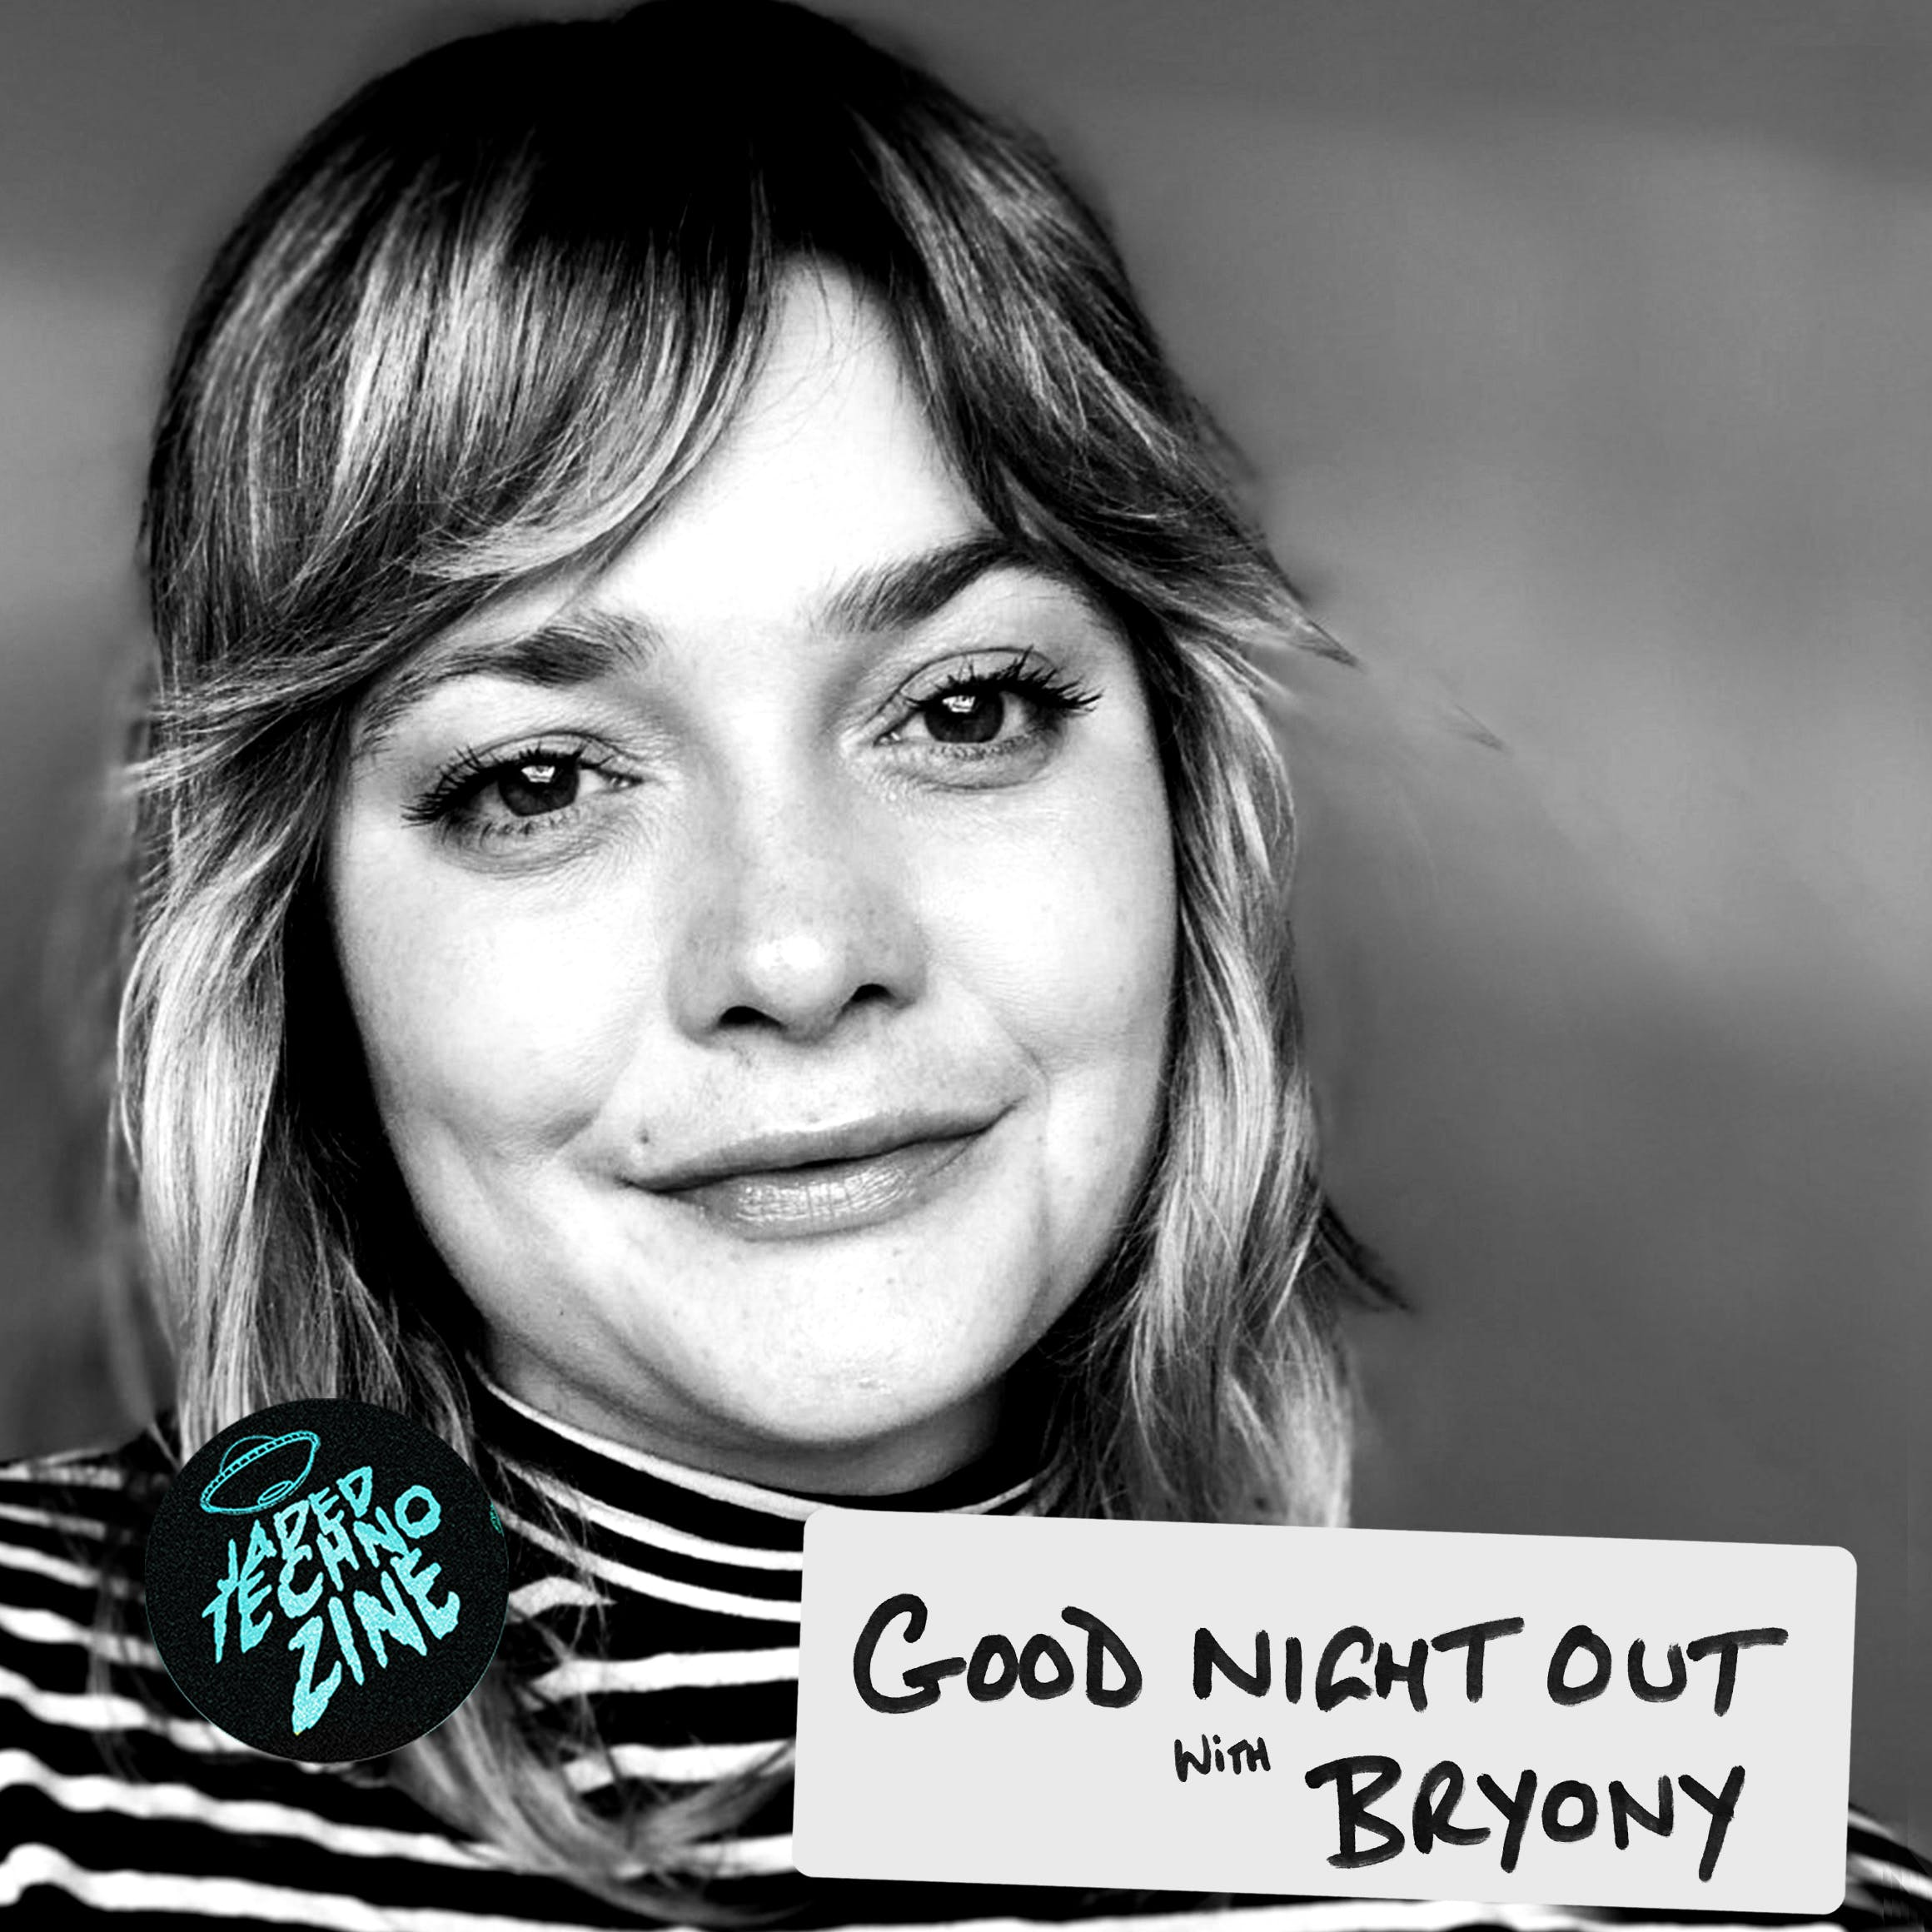 Experience: Good Night Out with Bryony